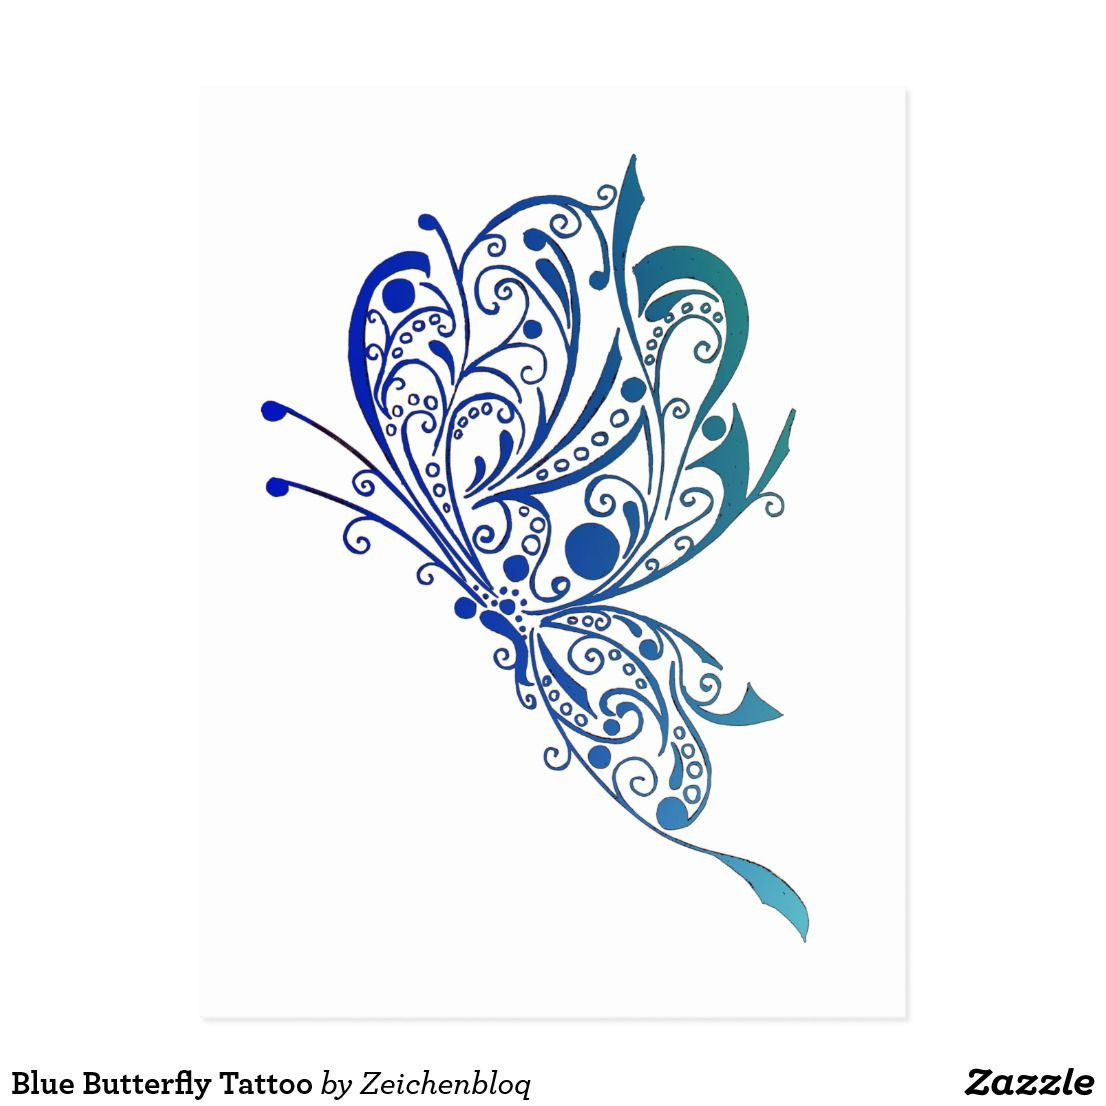 Blue Butterfly Tattoo Postcard | Zazzle.com